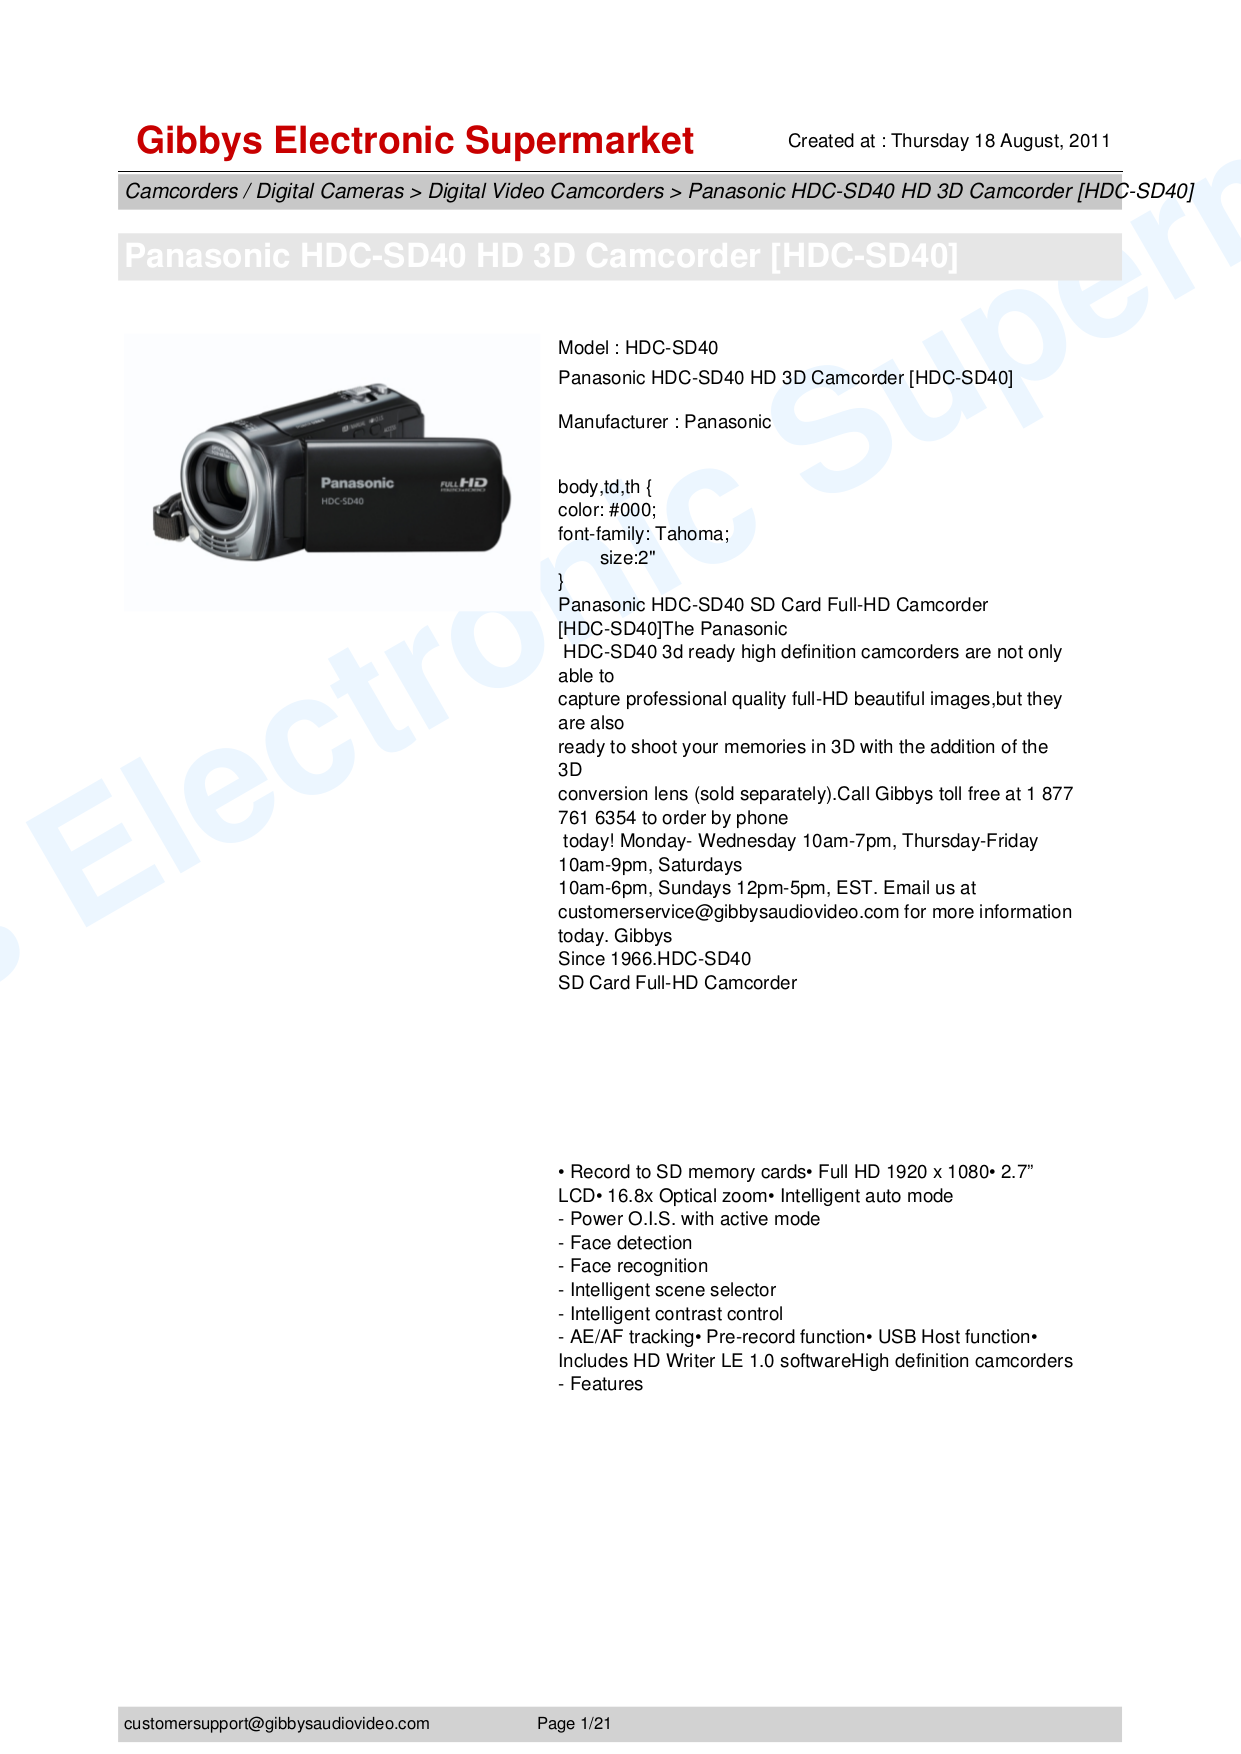 PDF manual for Panasonic Camcorders HDC-SD40